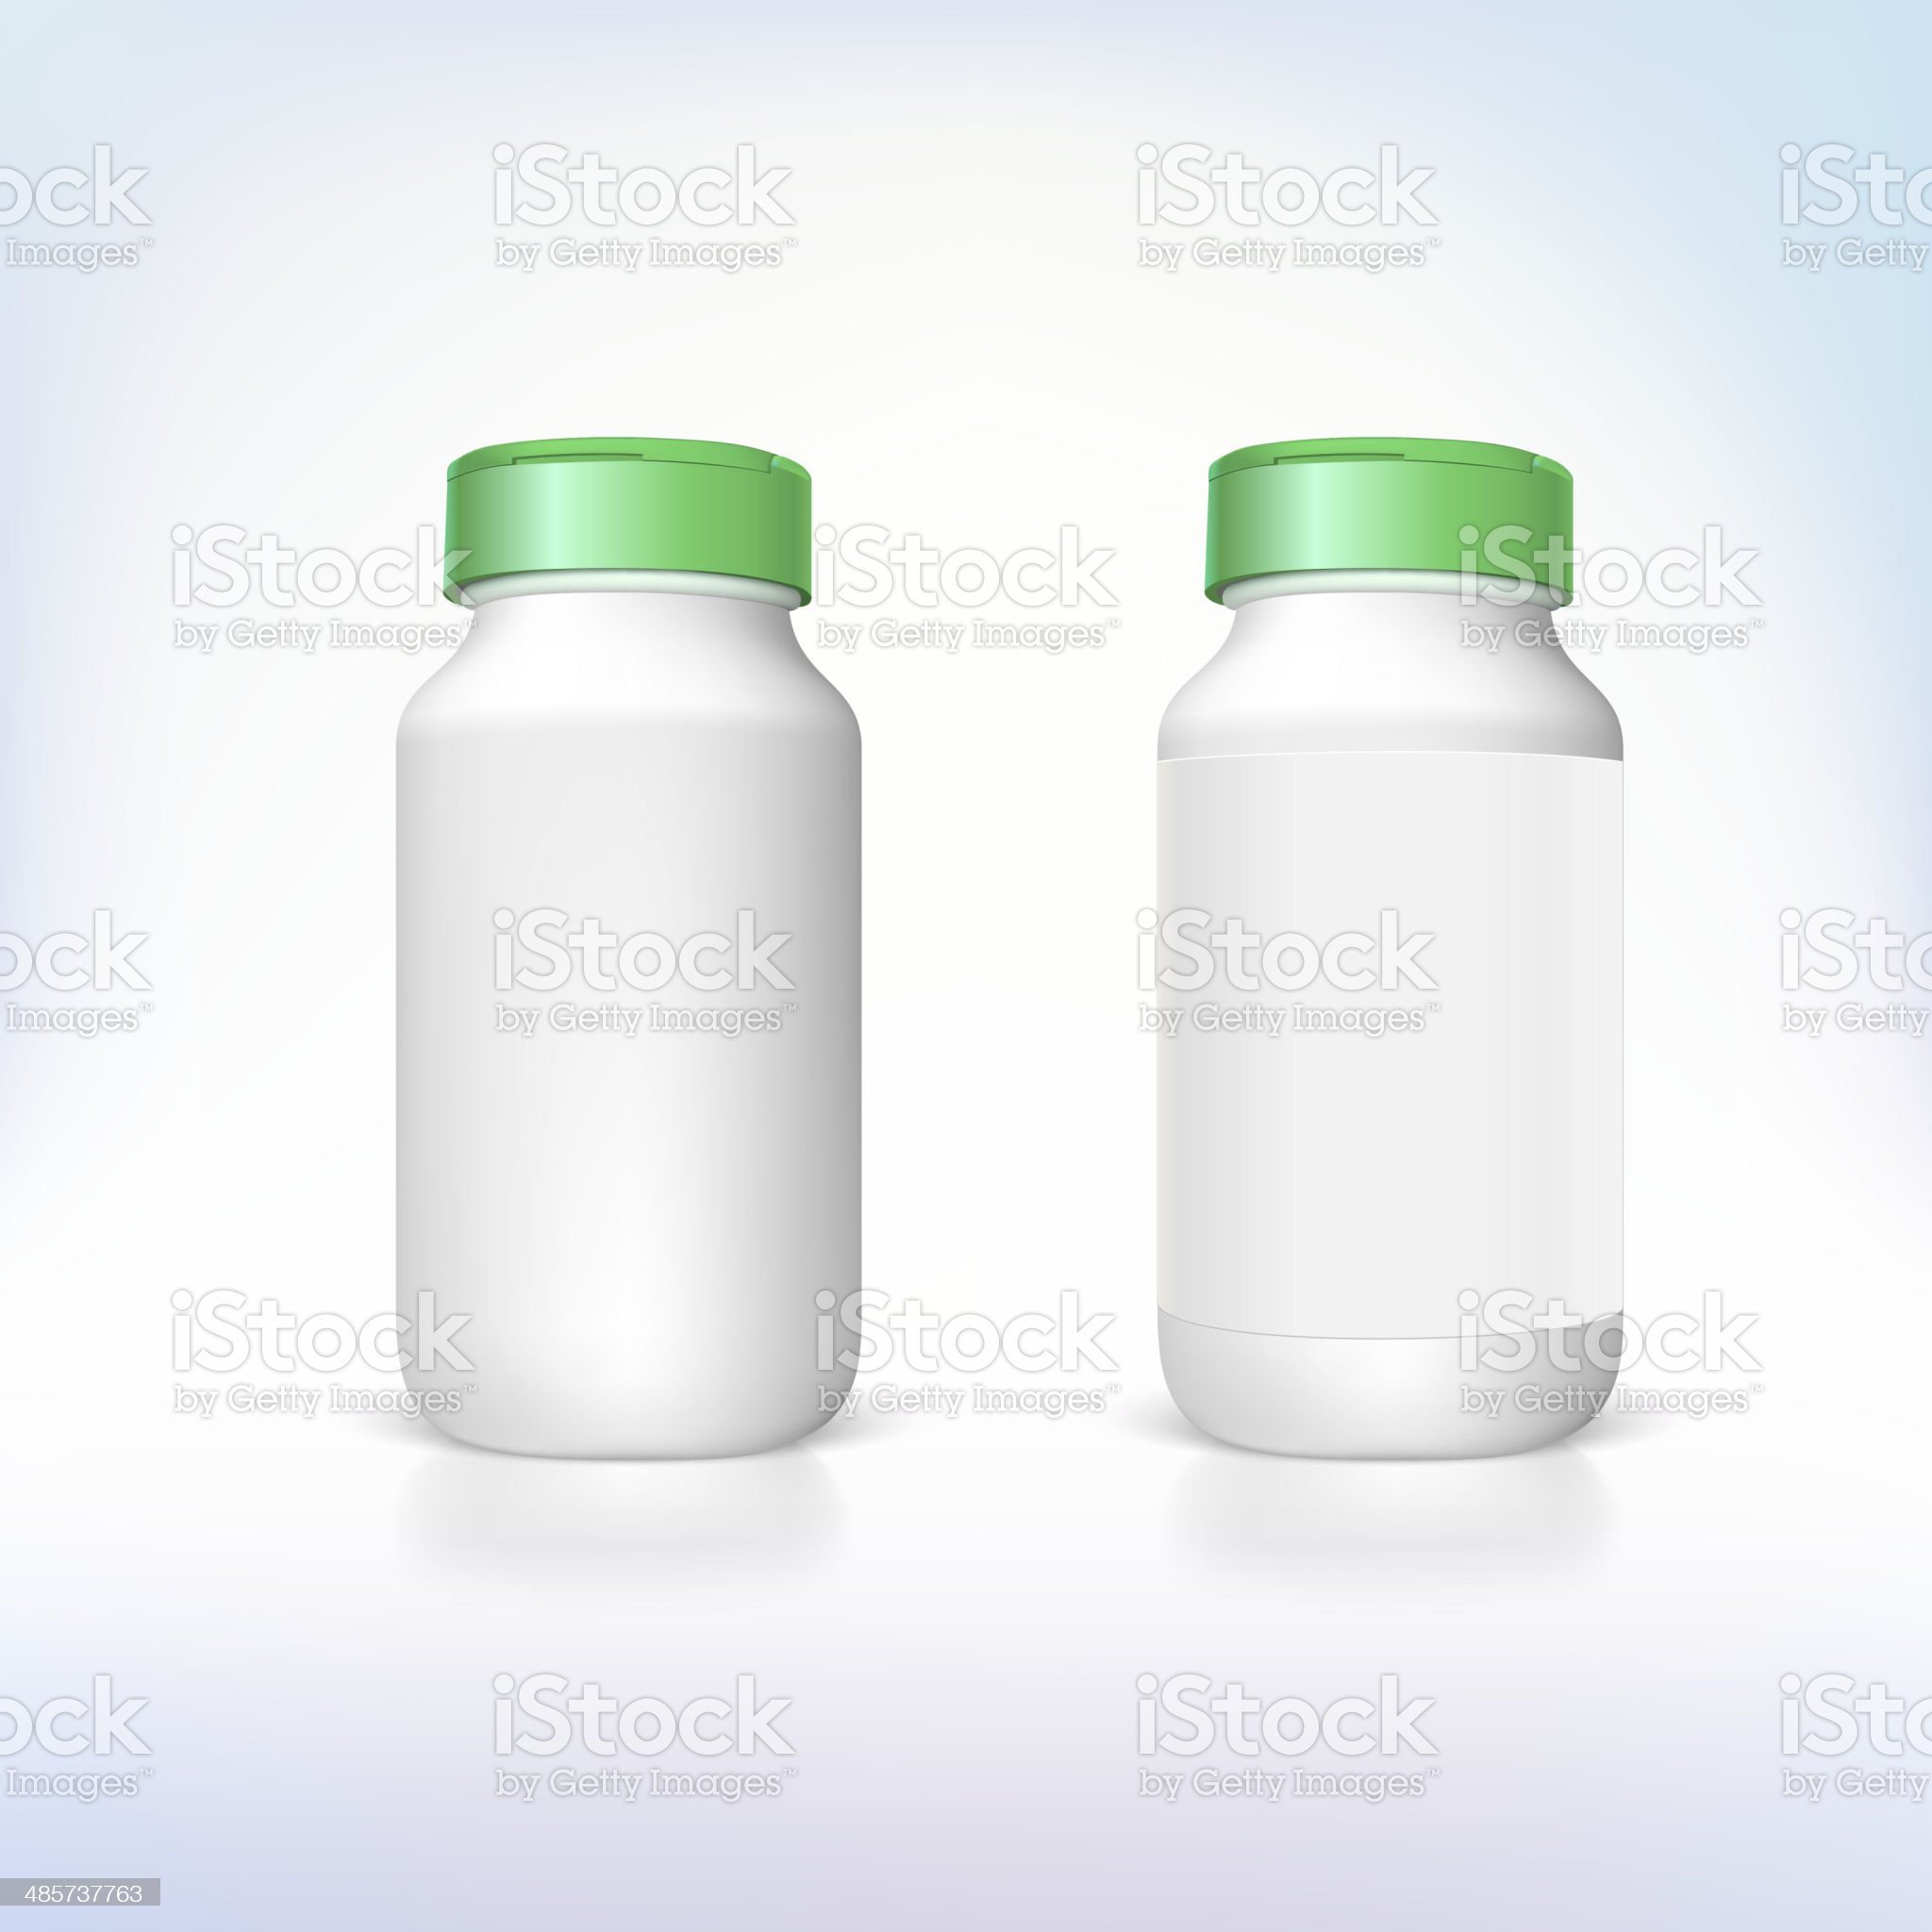 Bottle for dietary supplements and medicines. royalty-free stock vector art